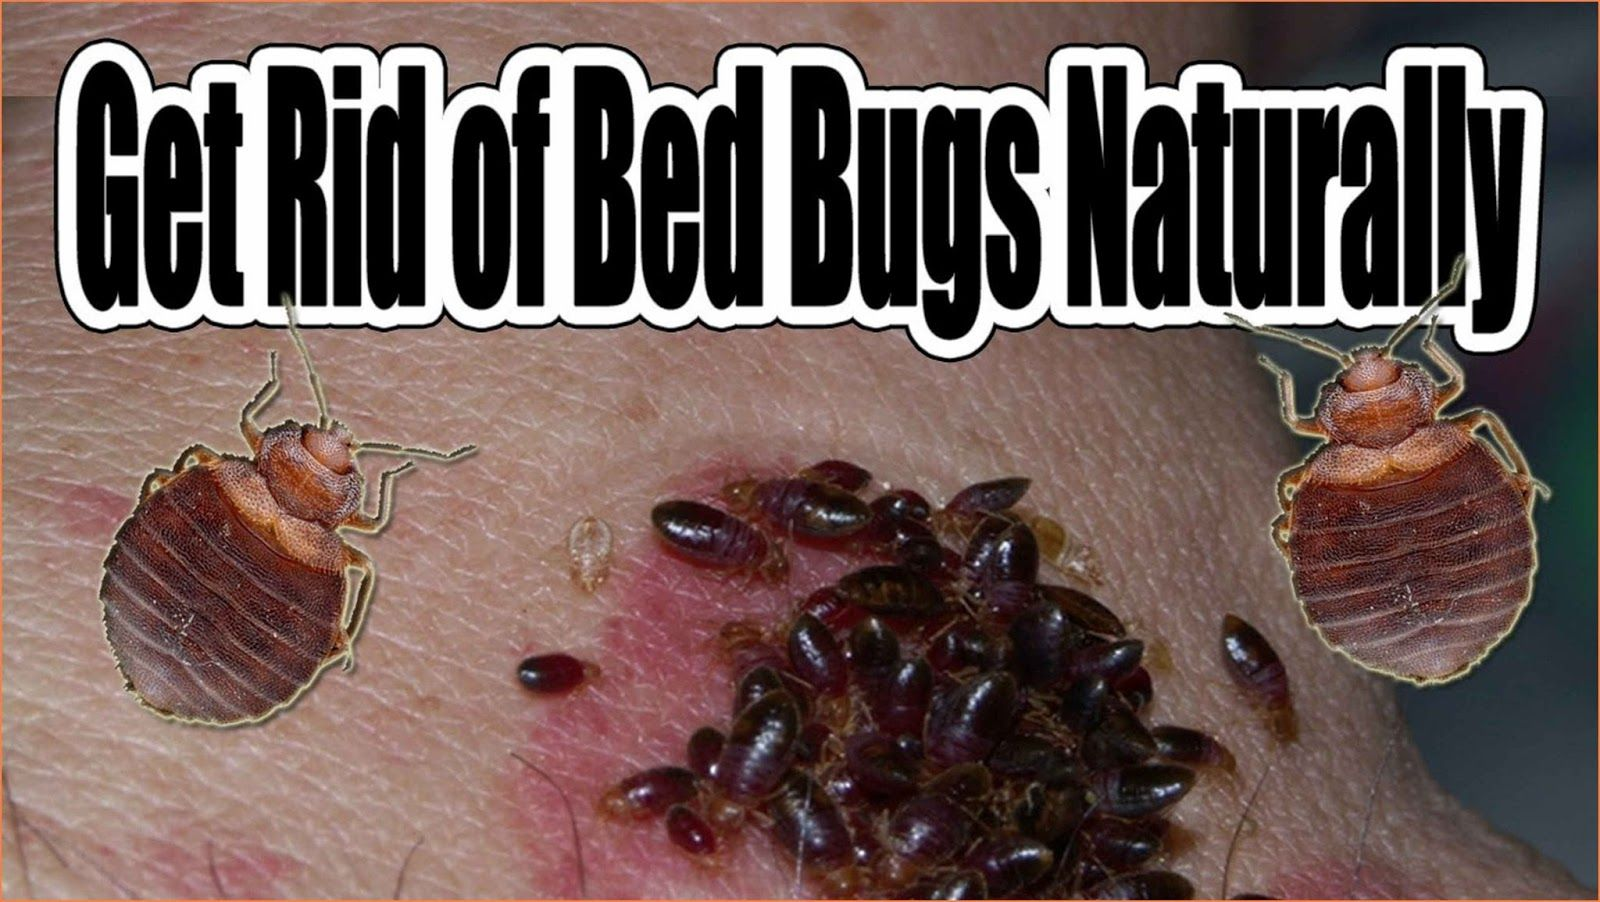 How To Get Rid Of Bed Bugs Organically Bed bugs, Rid of